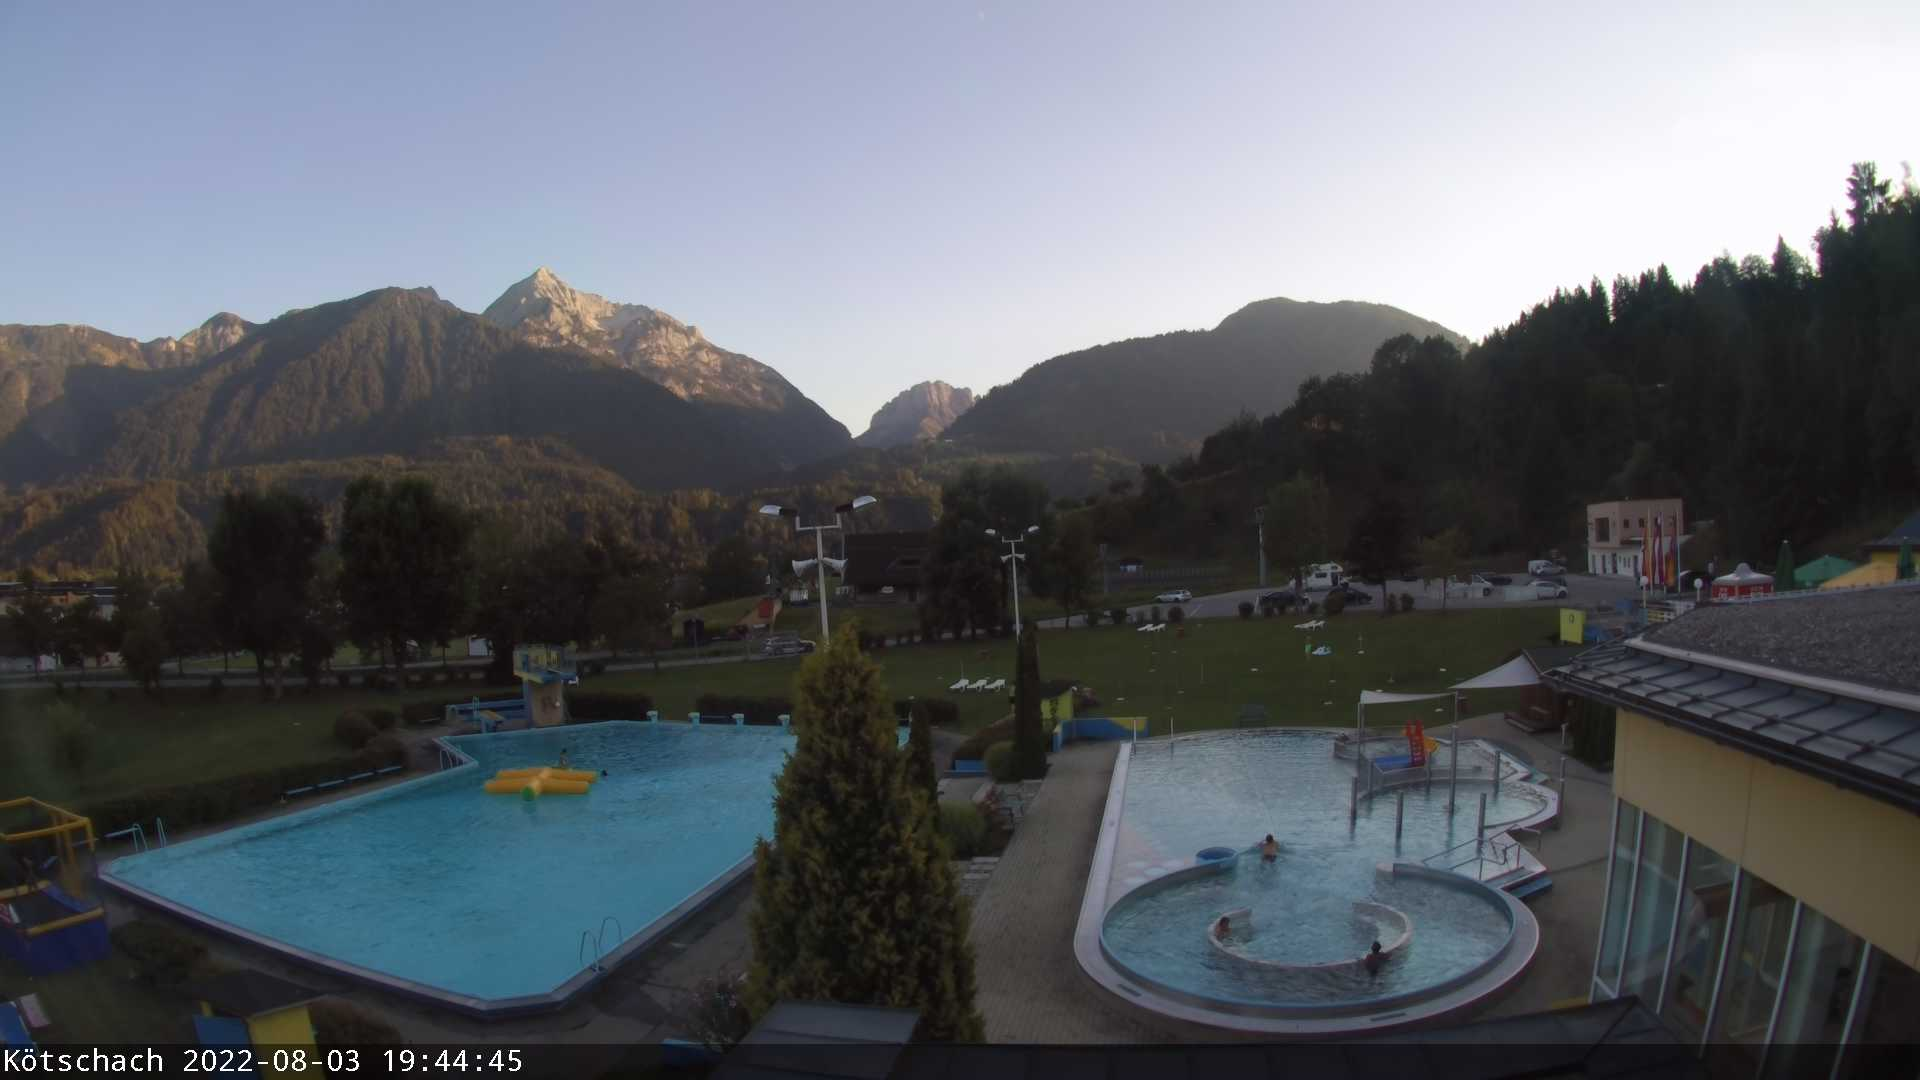 Aquarena-Webcam Aussenansicht